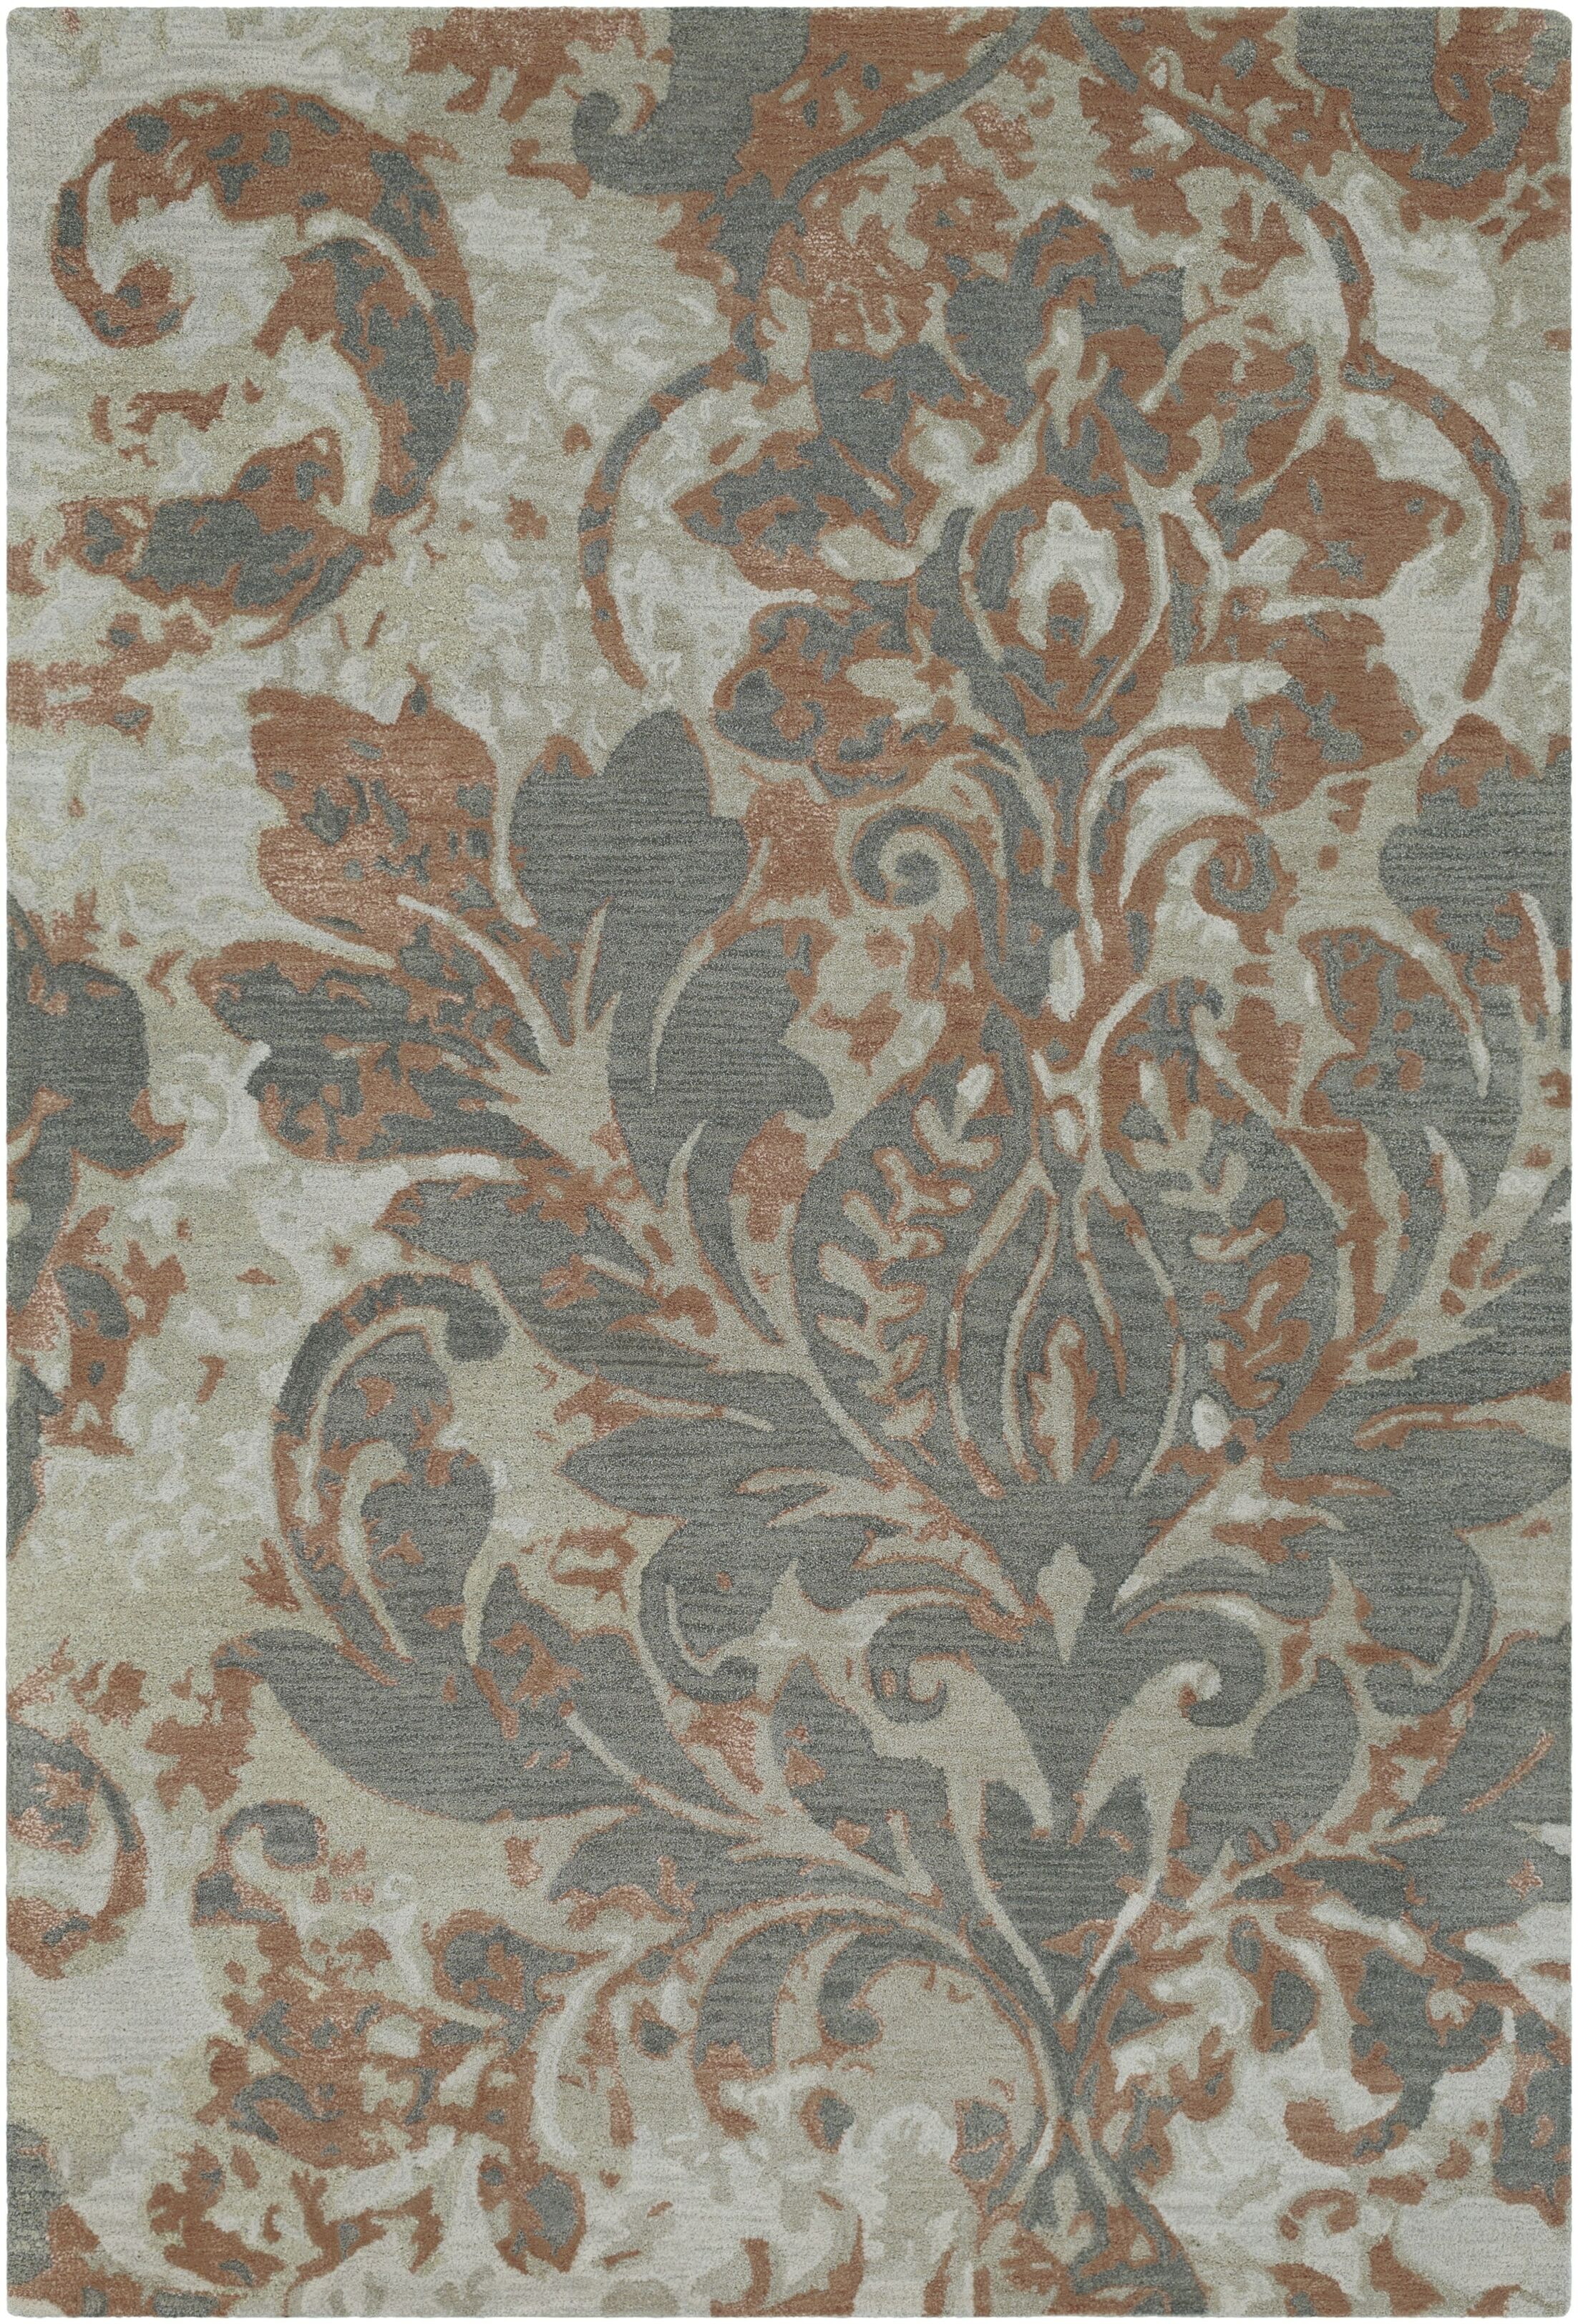 Terry Hand-Tufted Camel/Charcoal Area Rug Rug Size: Runner 2'6